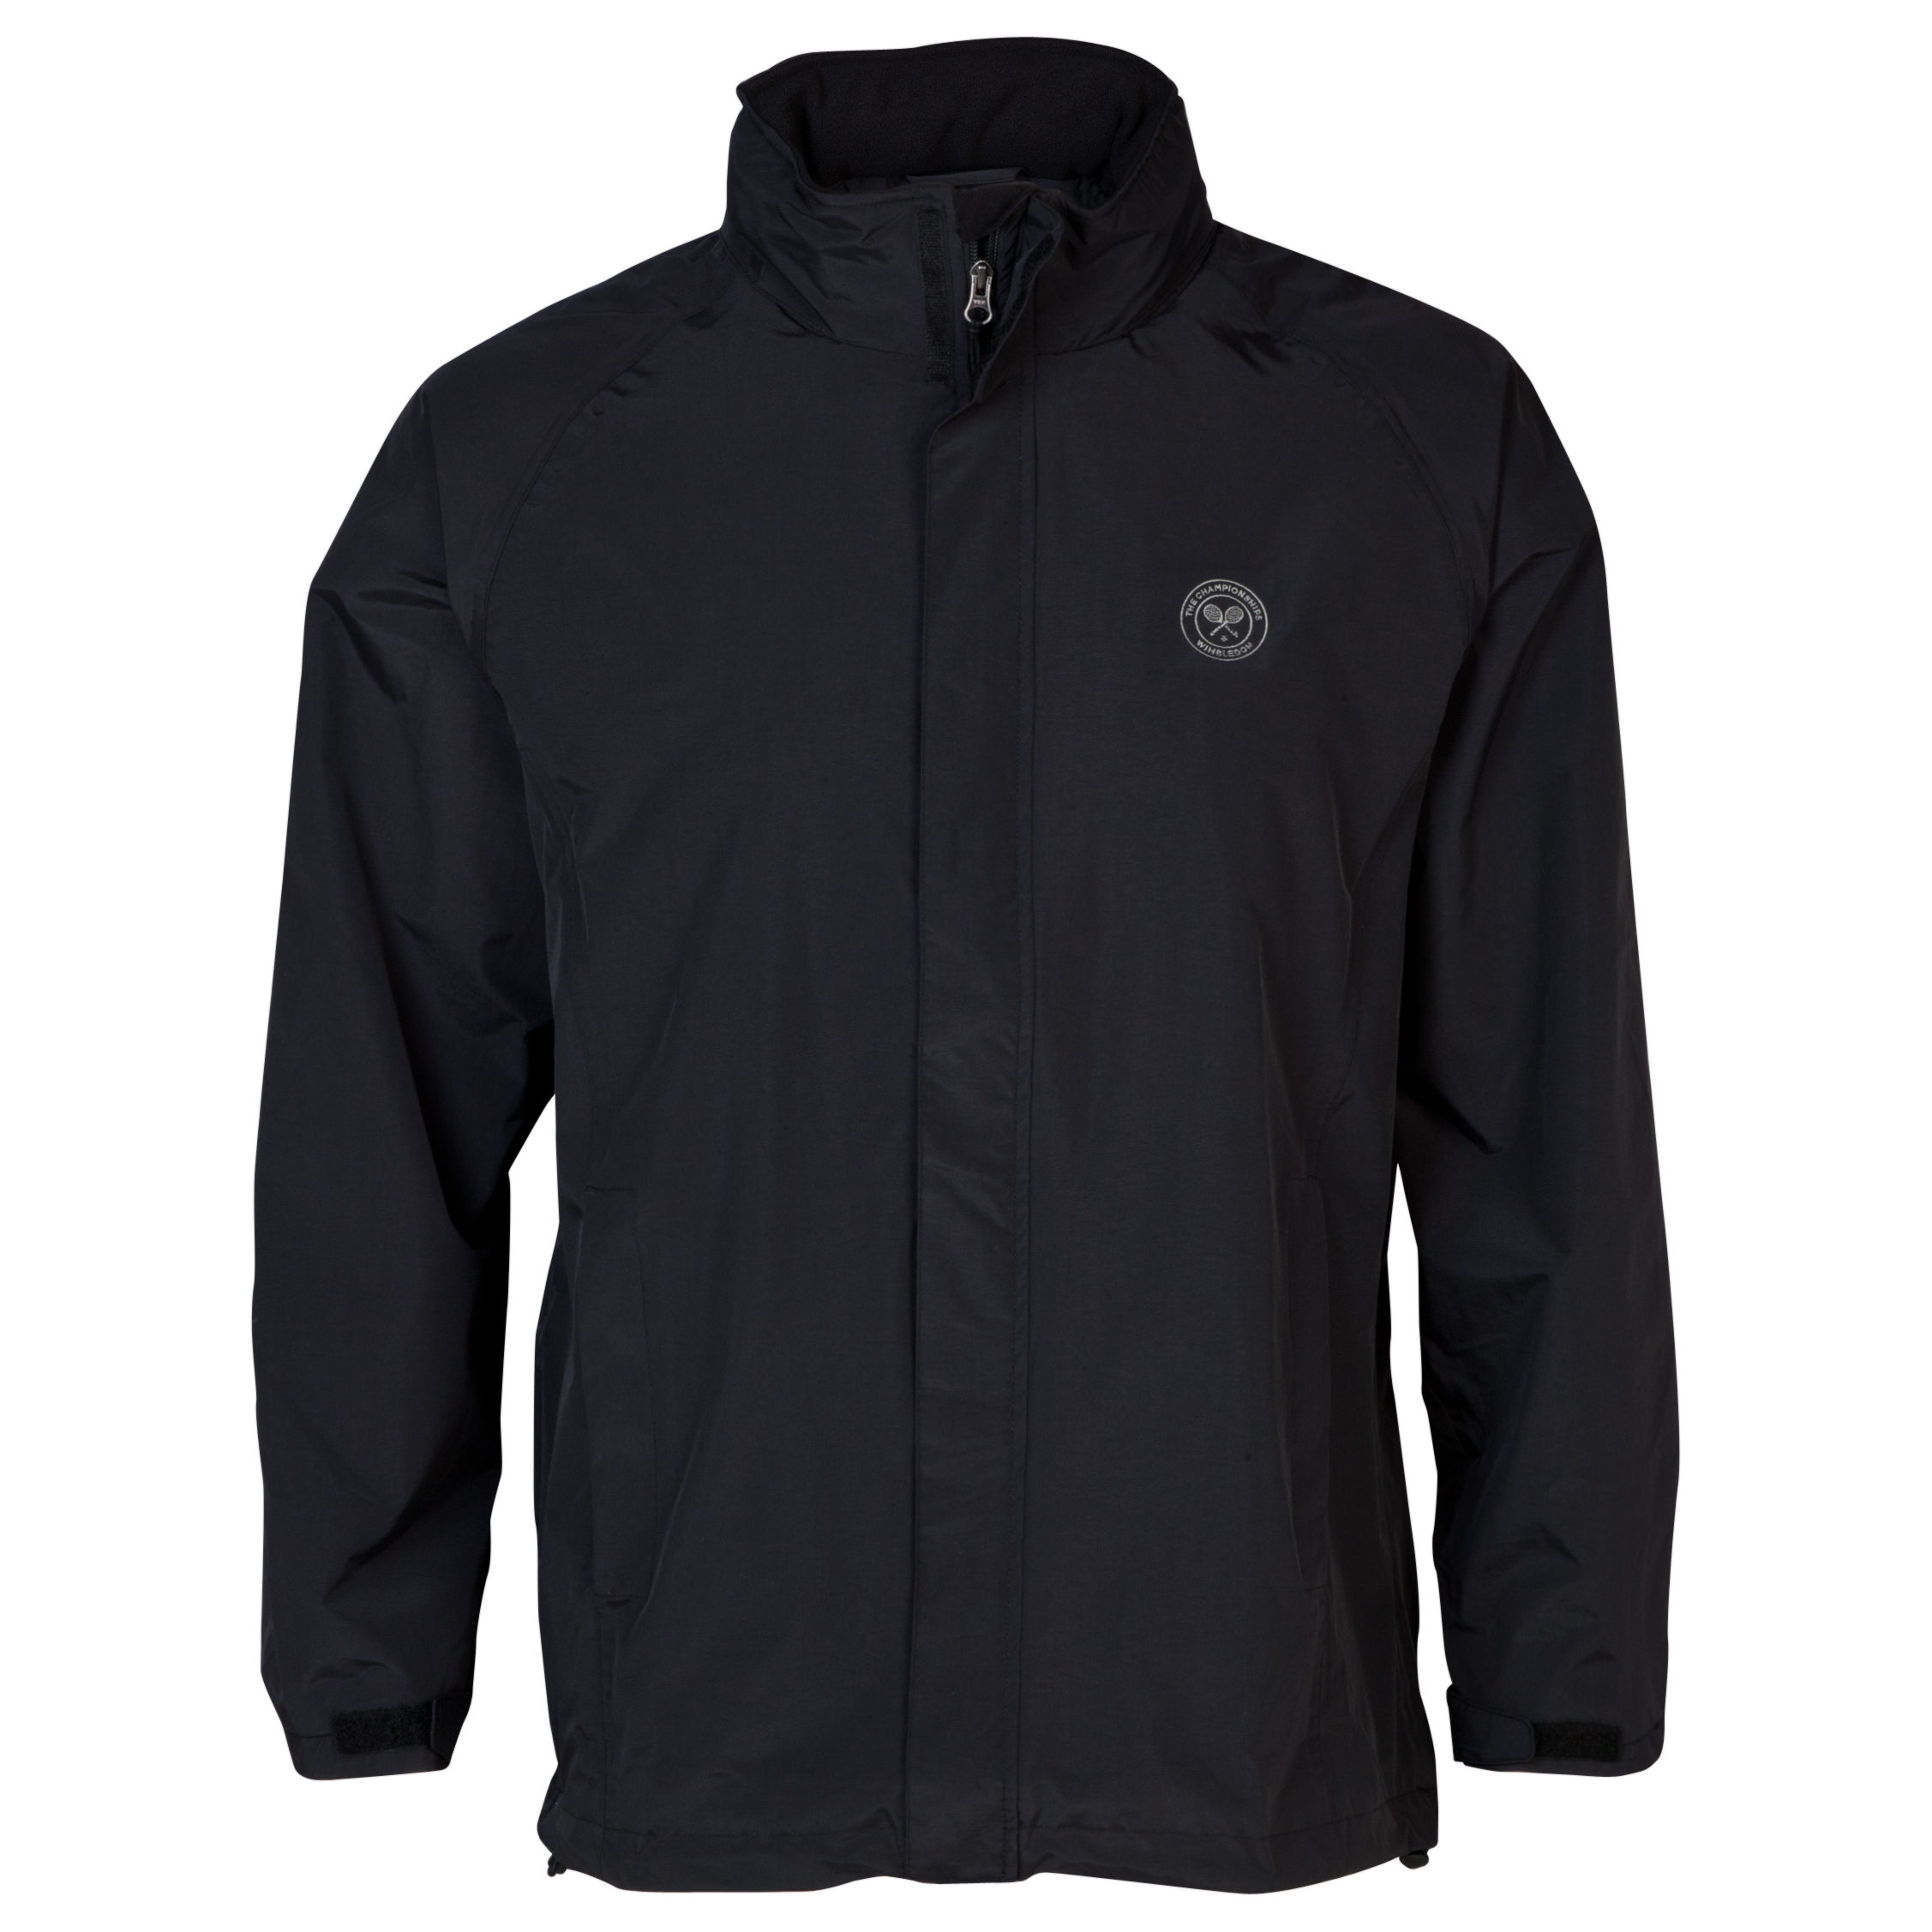 Wimbledon Multi Activity Storm Jacket Black